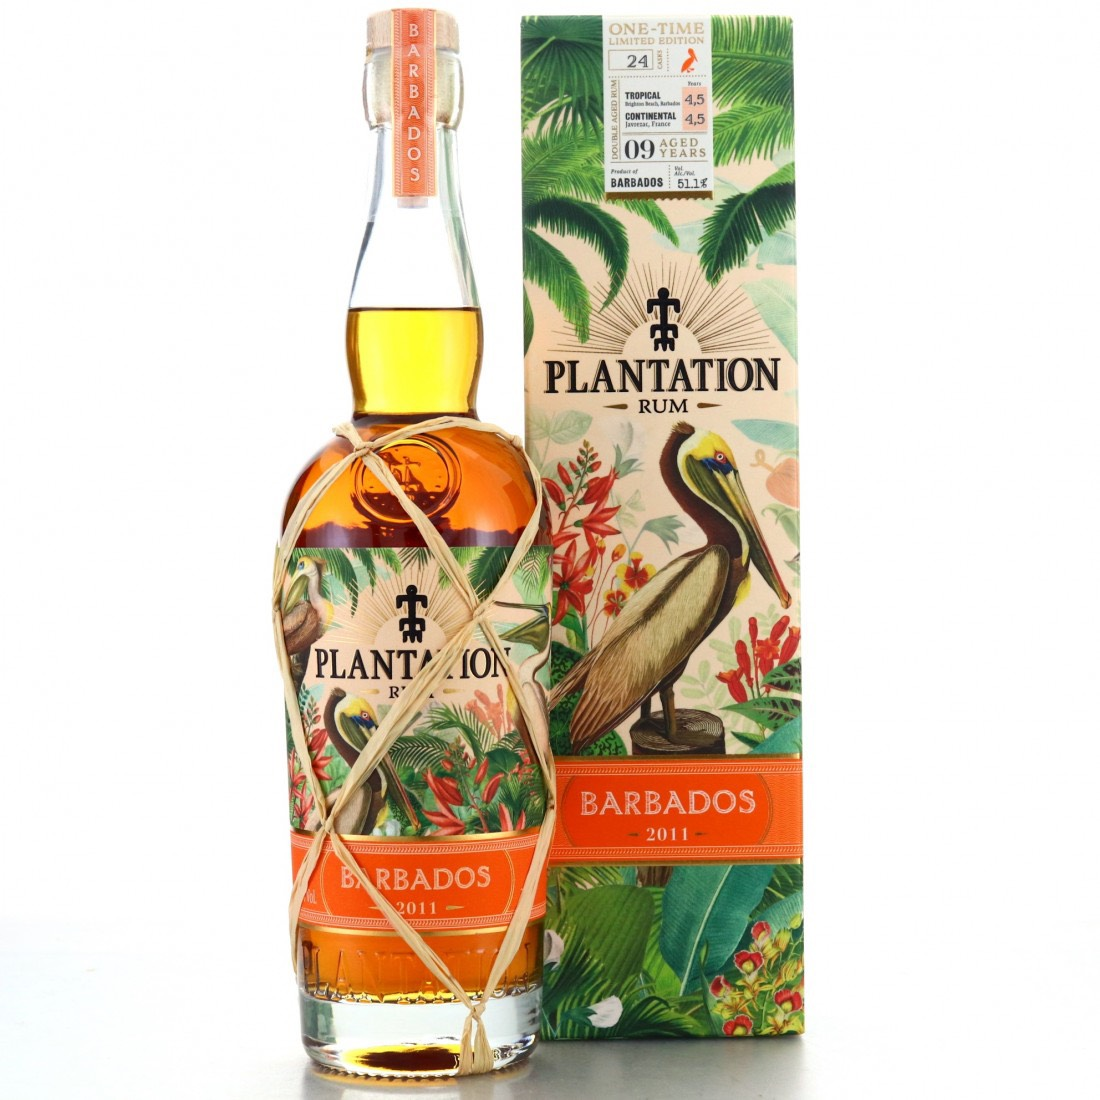 Bottle image of Plantation One Time Limited Edition